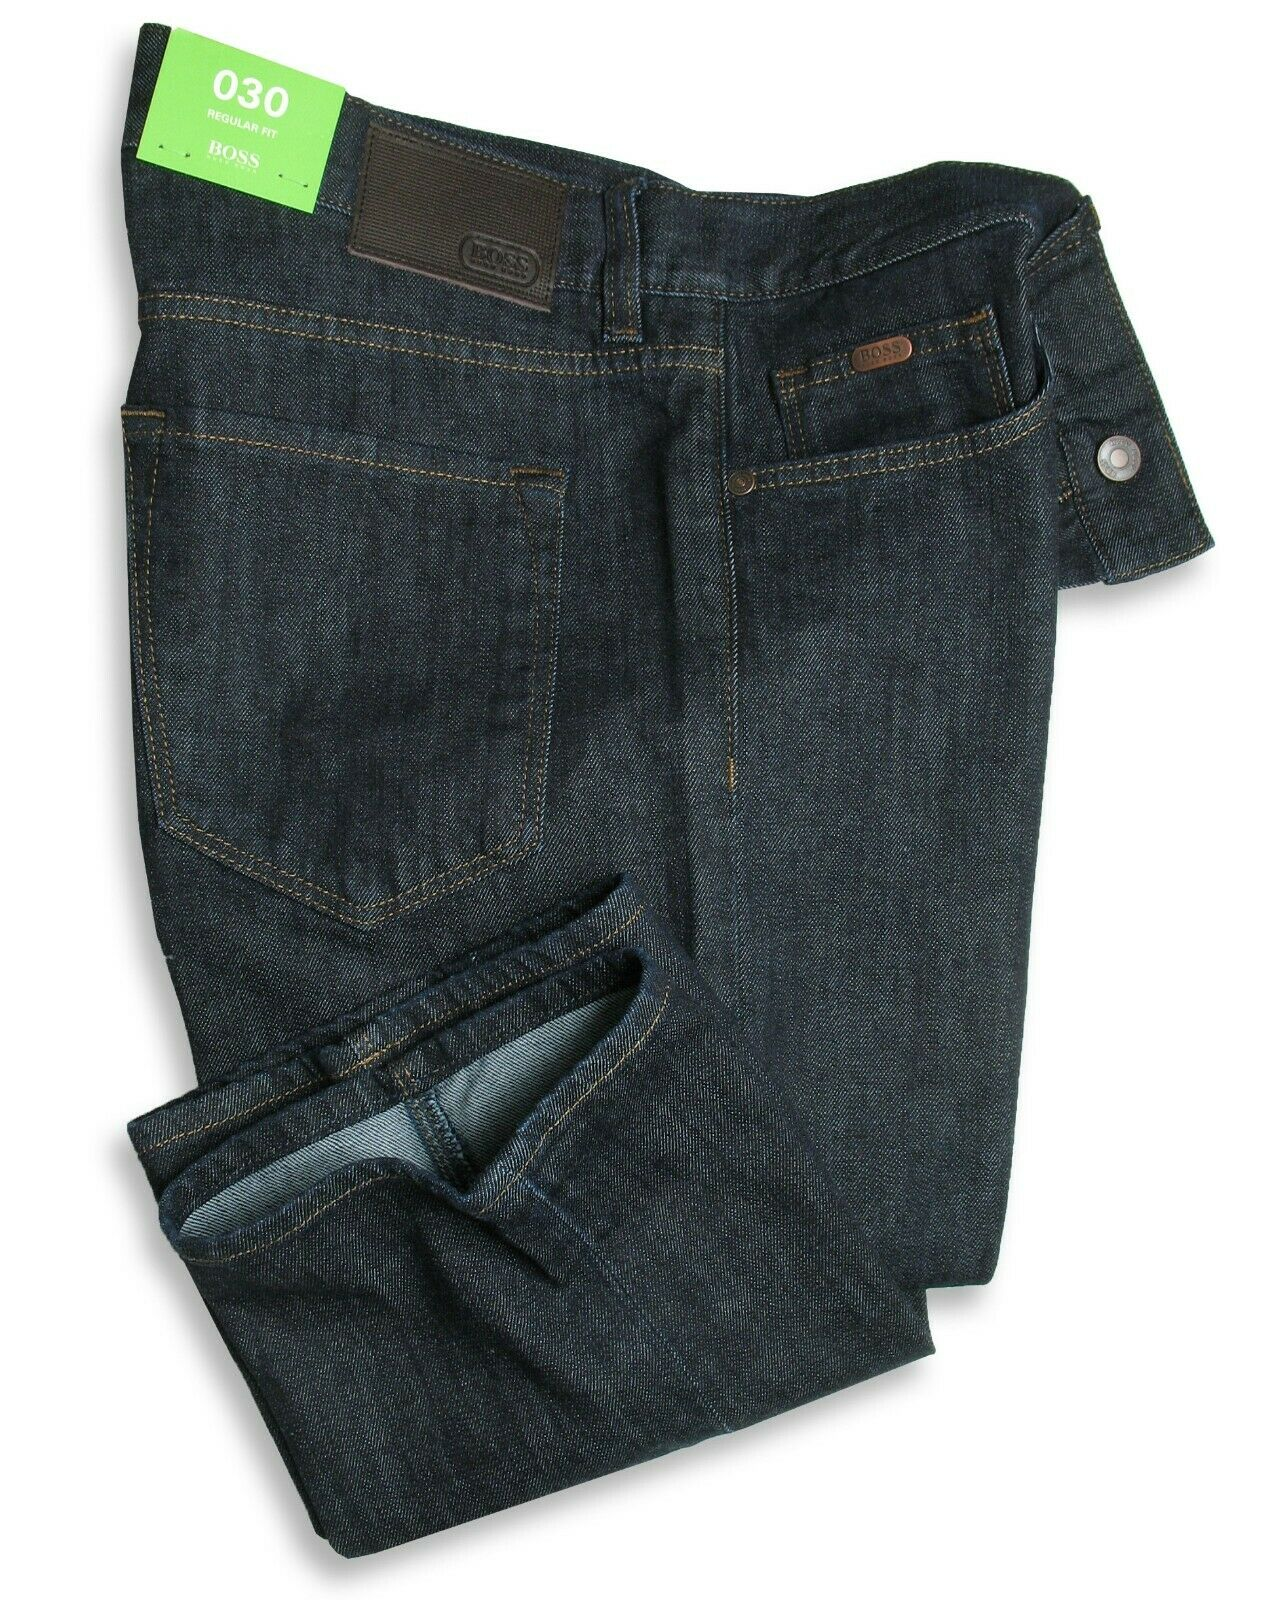 Hugo Boss Green Jeans C-Maine (Regular Fit) Dark bluee Rinsed Stretch